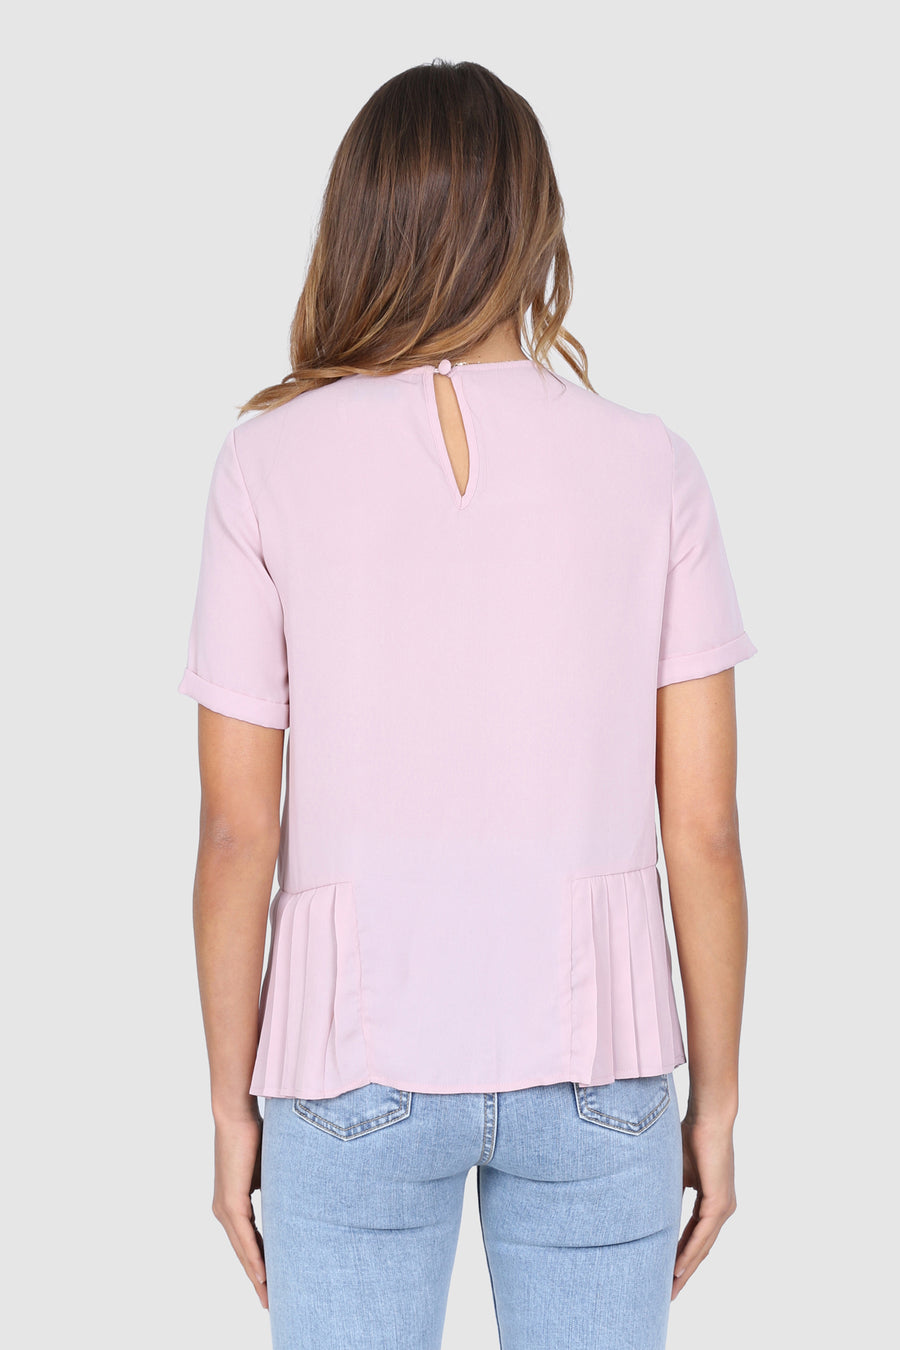 Allure Top | Dusty Pink